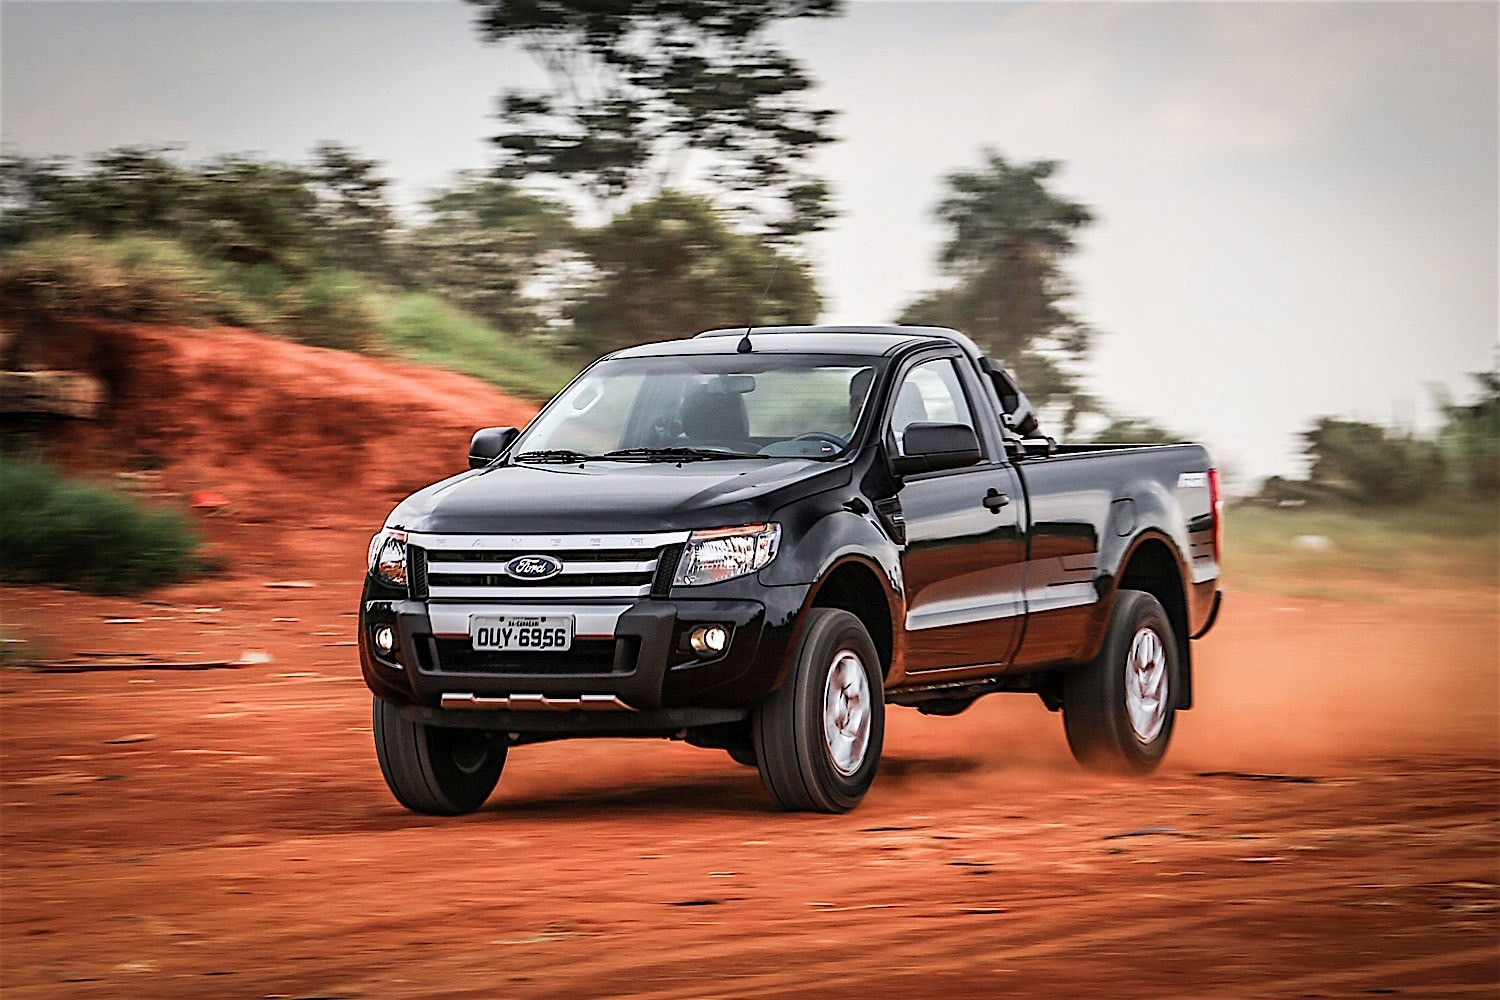 FORD Ranger Regular Cab specs & photos - 2011, 2012, 2013, 2014, 2015 - autoevolution